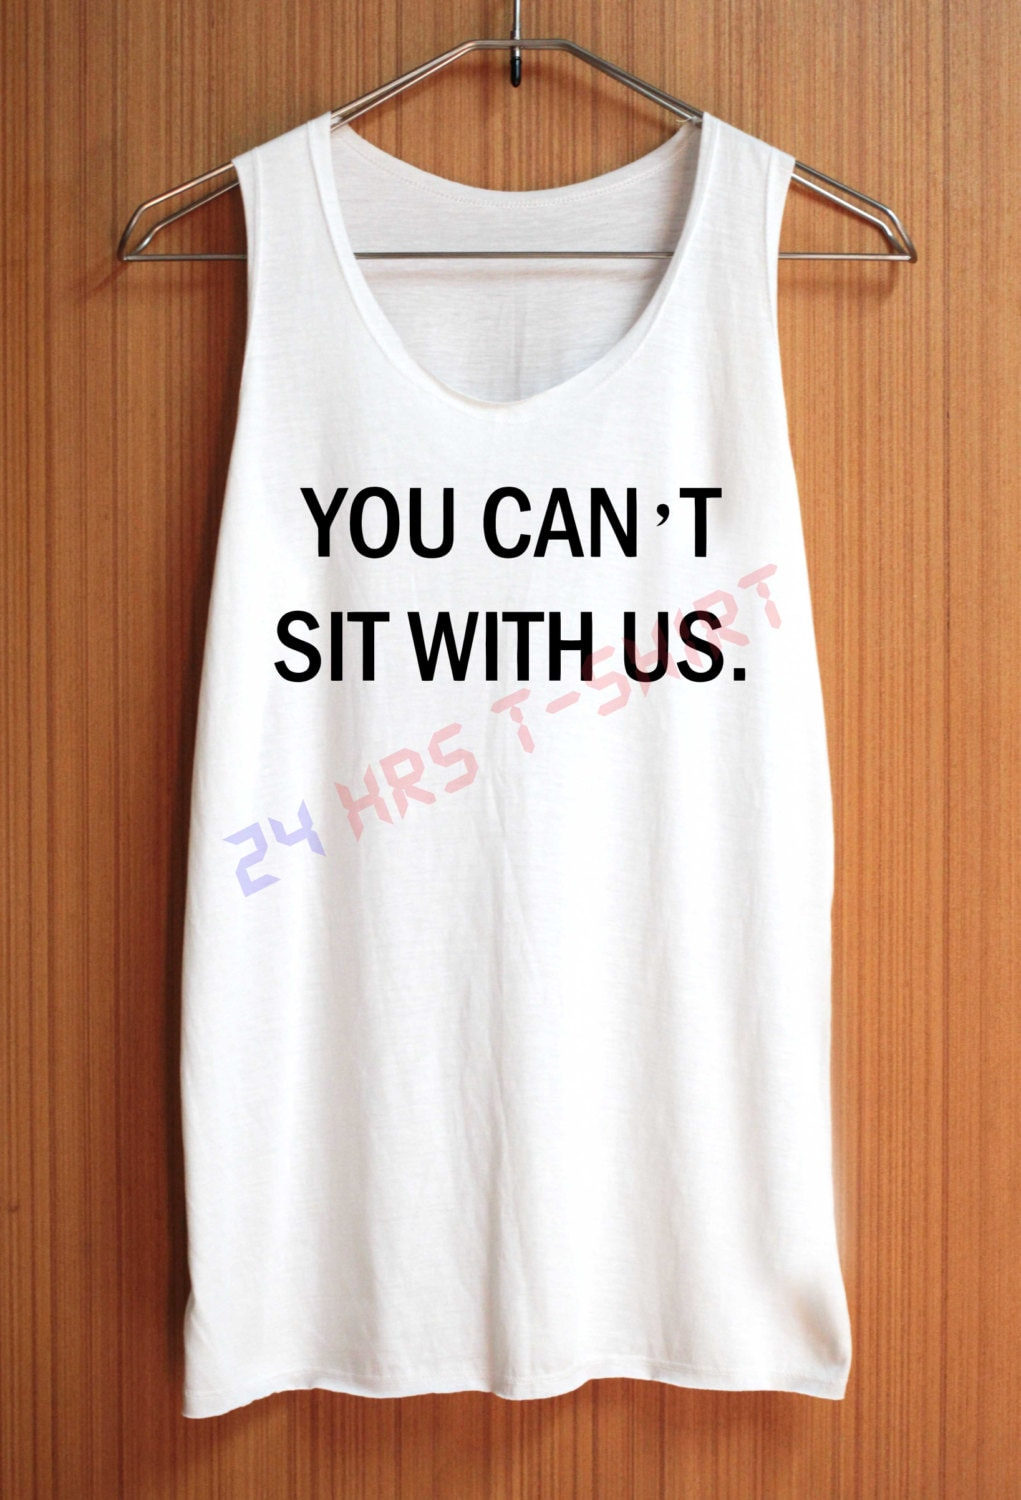 You Can't Sit With Us Shirt Mean Girls Quote Shirts Top Tank Top Tee ...